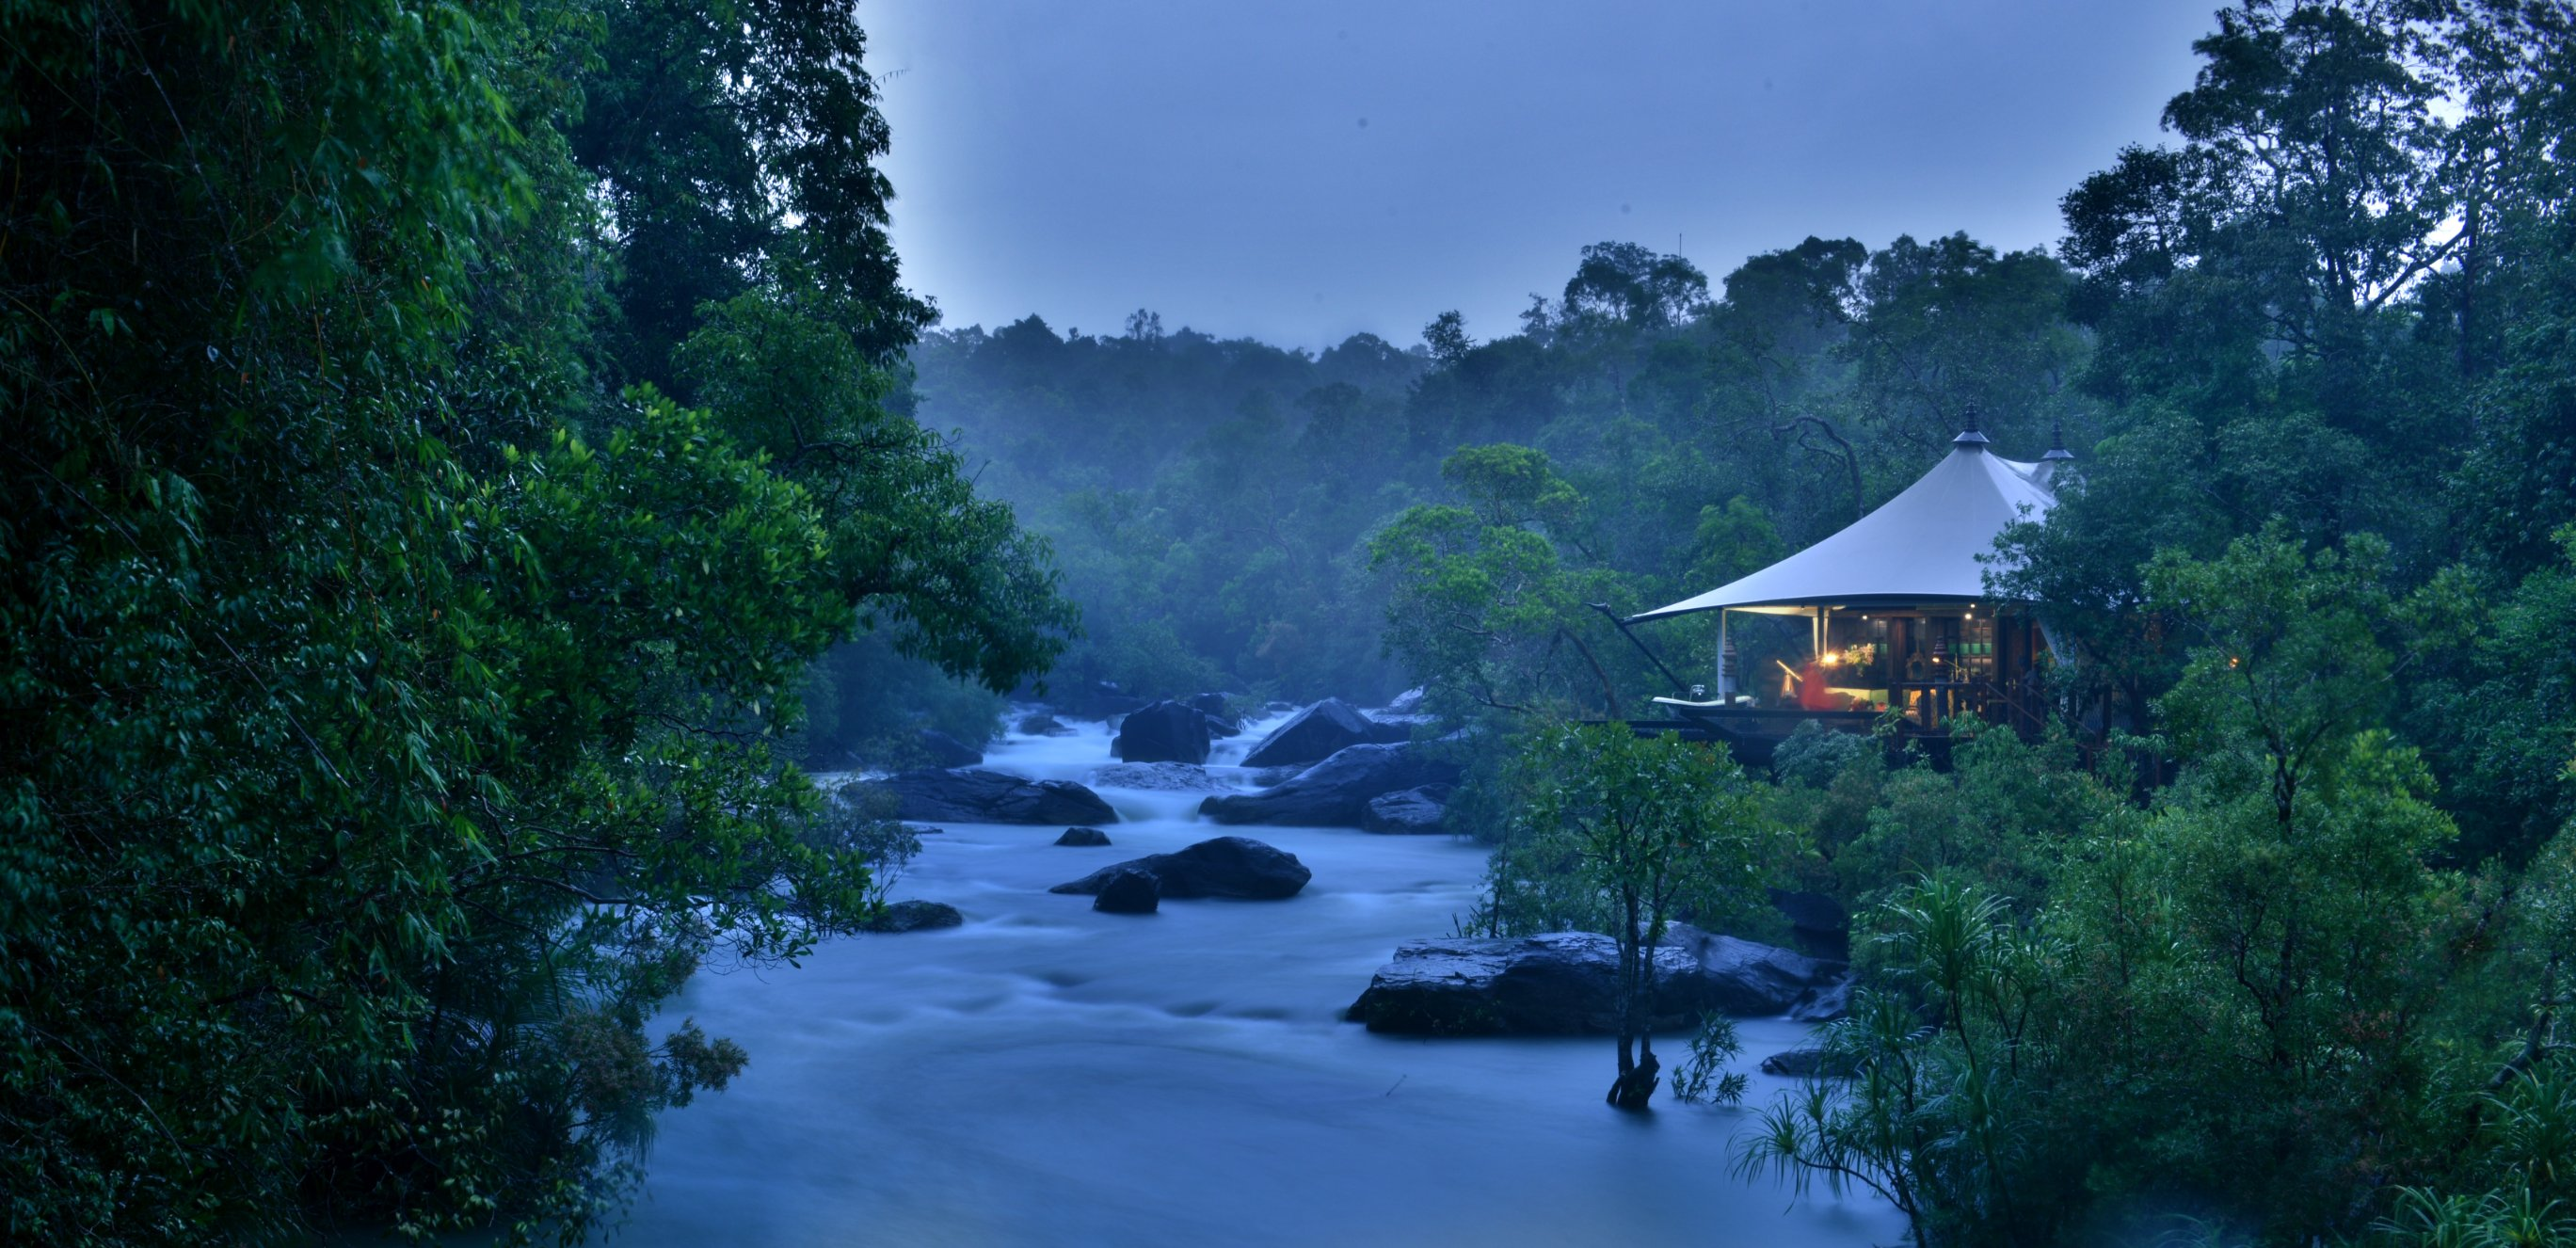 Asia\'s best luxury tented camps: See wildlife in comfort | CNN Travel